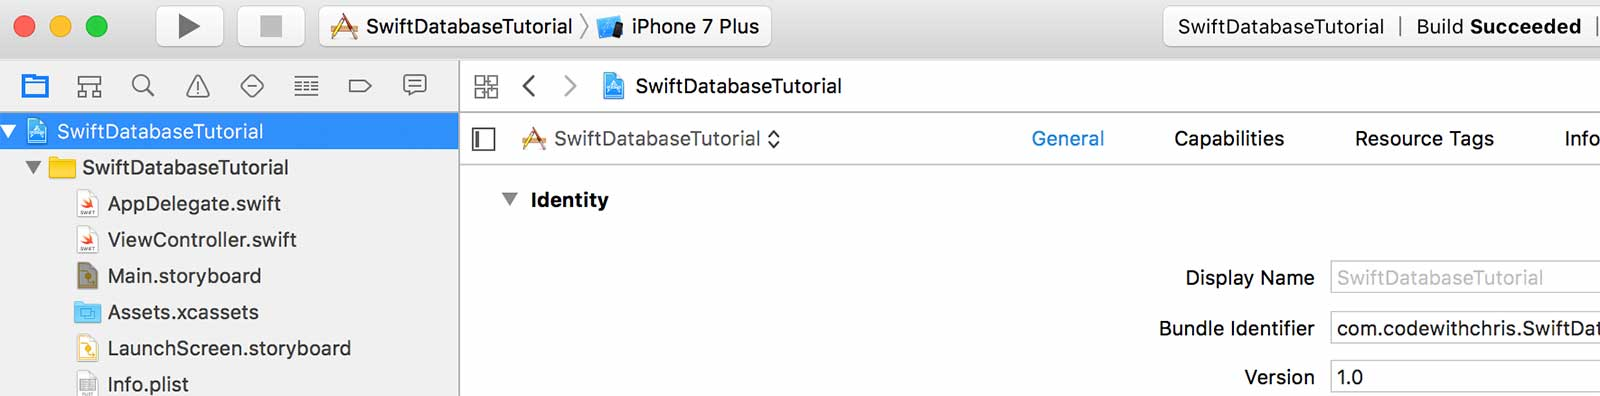 Project settings in Xcode